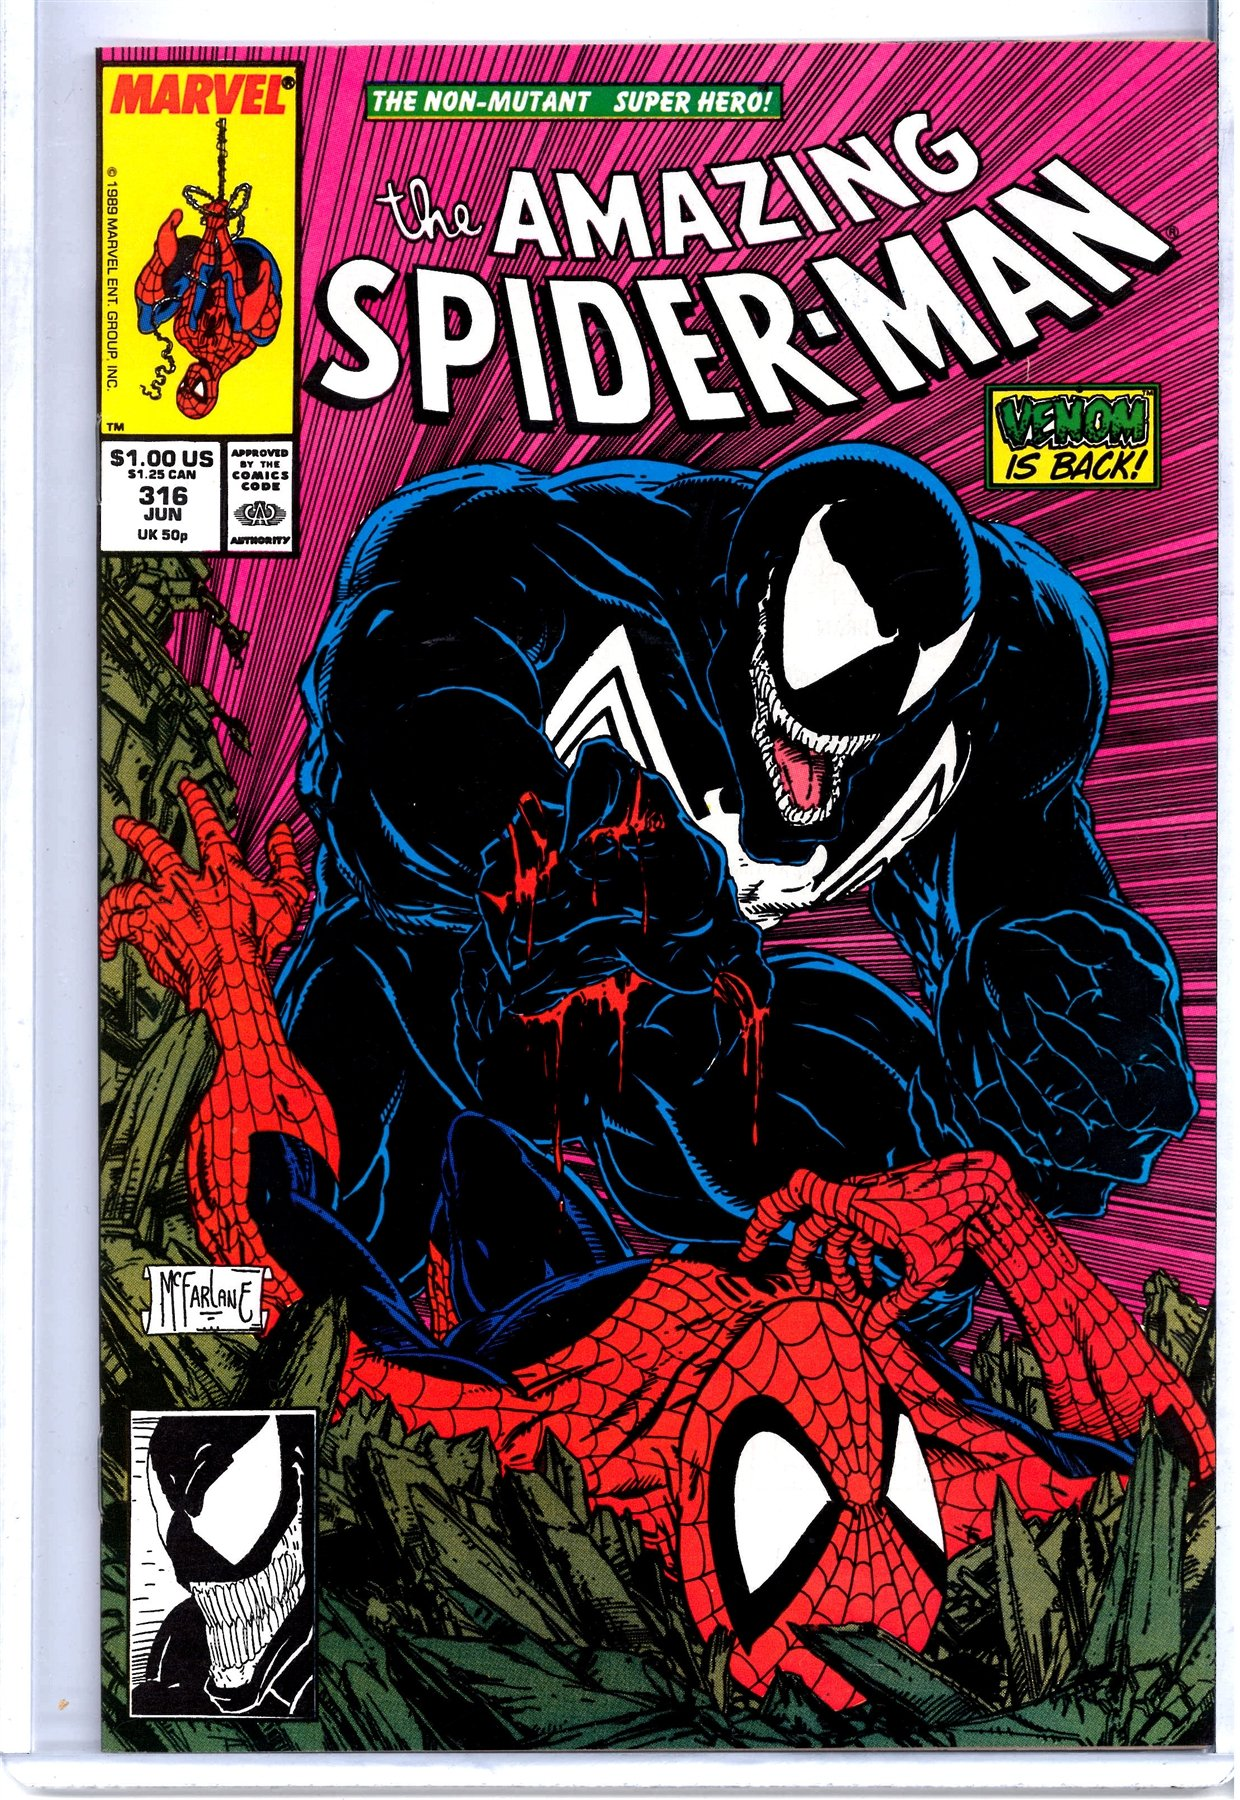 Spider-Man 316 cover